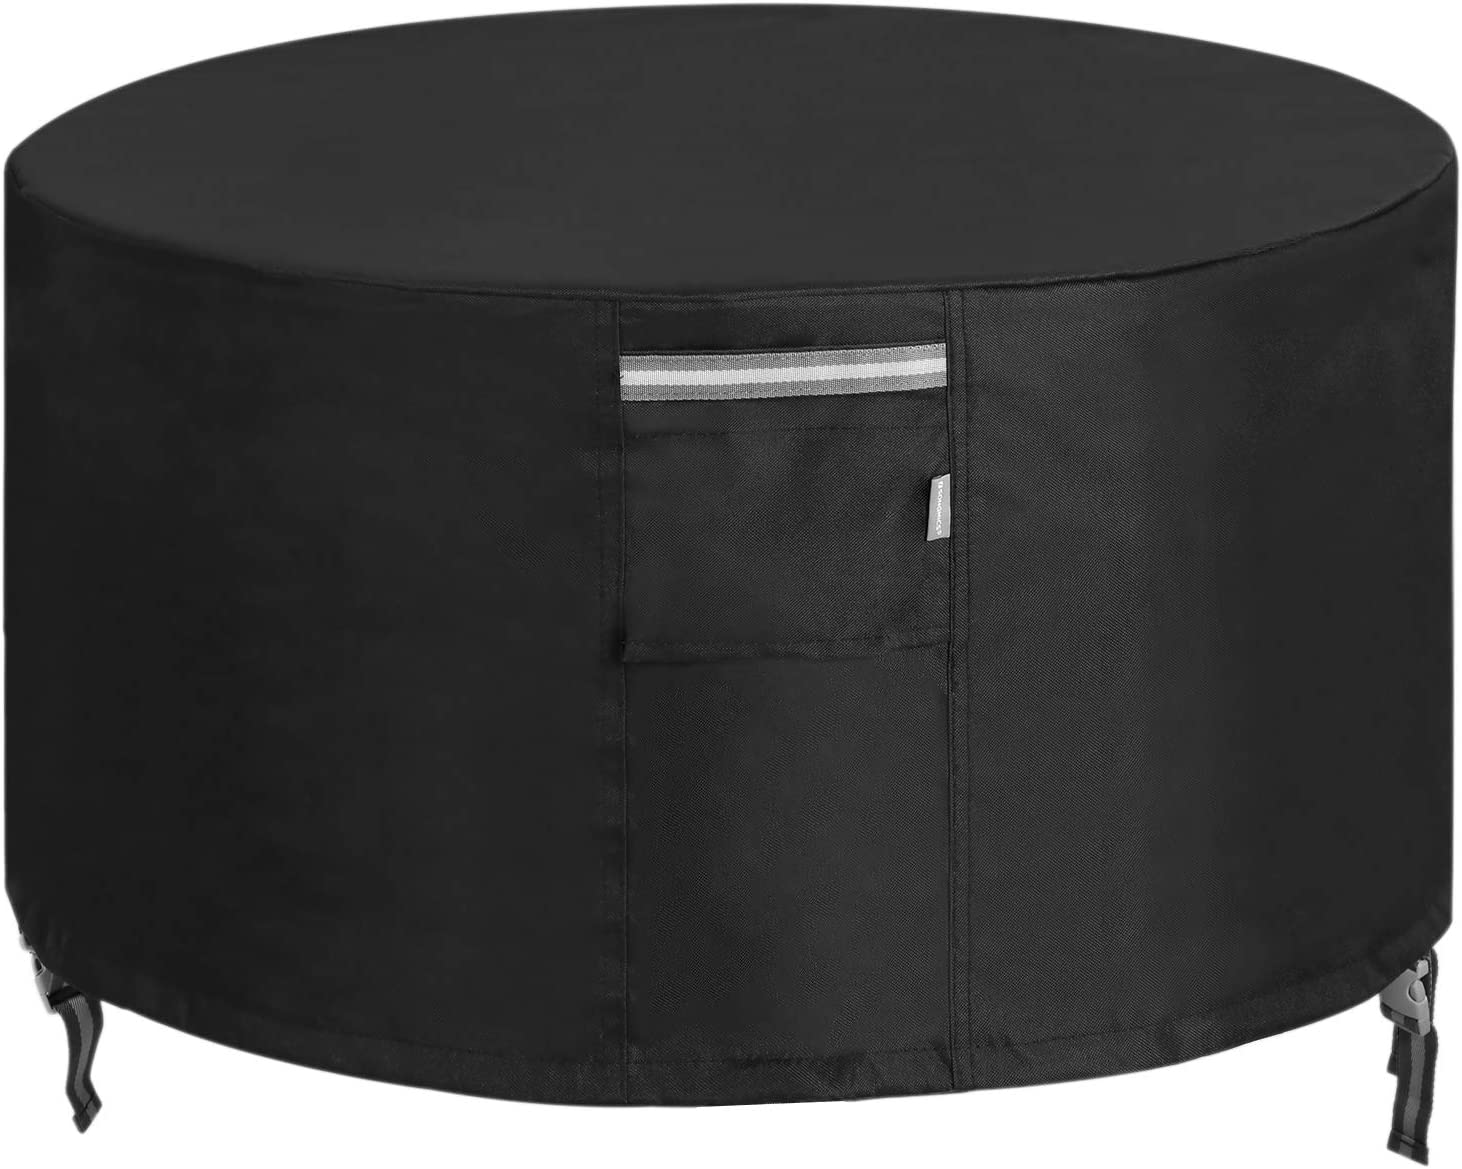 SONGMICS Fire Pit Cover, 600D Oxford Fabric, Round Fire Pit Table Protective Cover for Outdoor Patio Garden, Waterproof and Anti-Fade, 36 Dia. x 24 Inches, Black UGPC091B03